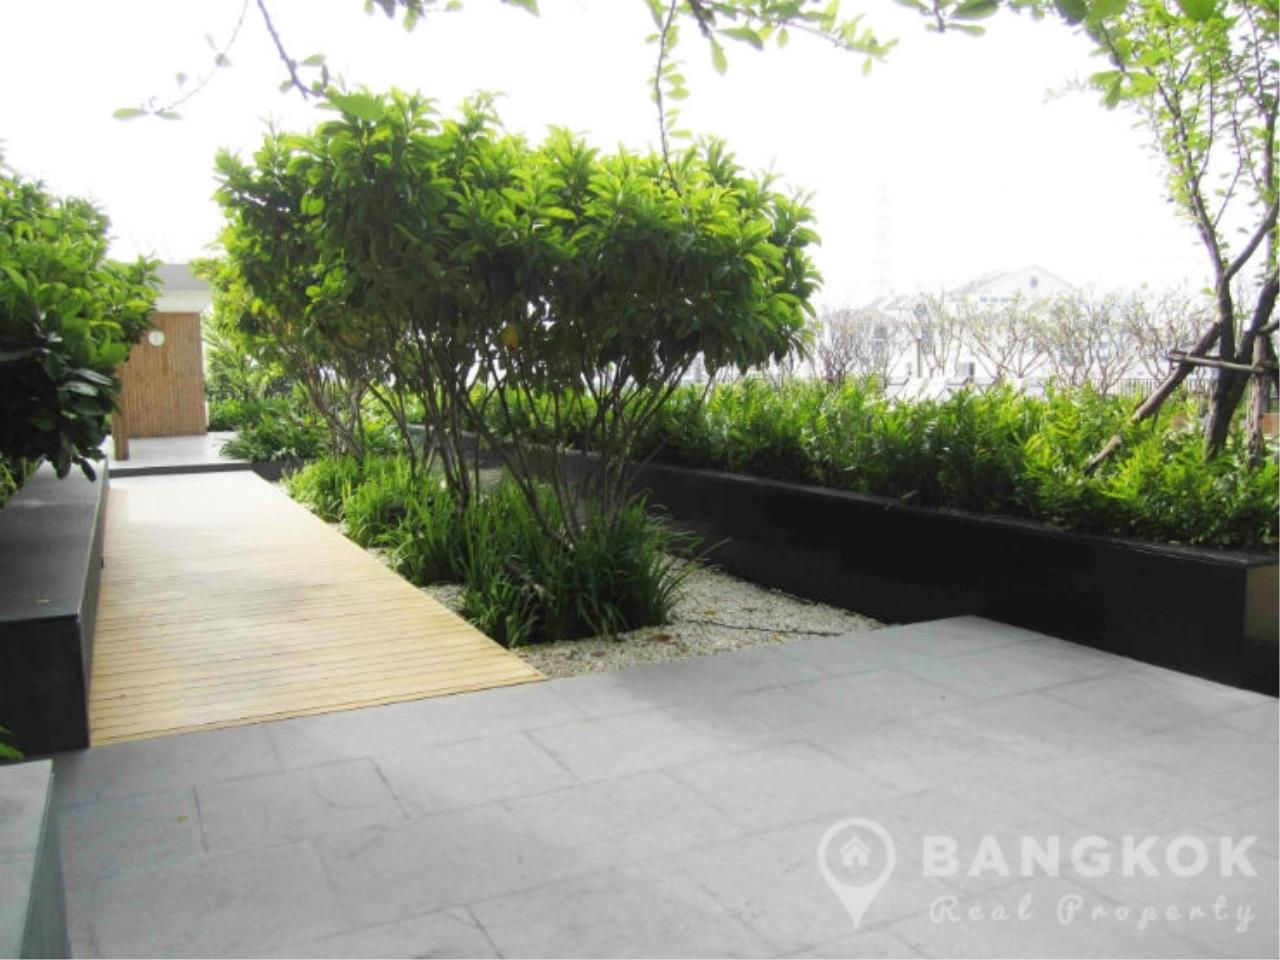 Bangkok Real Property Agency's Issara Ladprao | Stylish High Floor Studio with Stunning Views 11